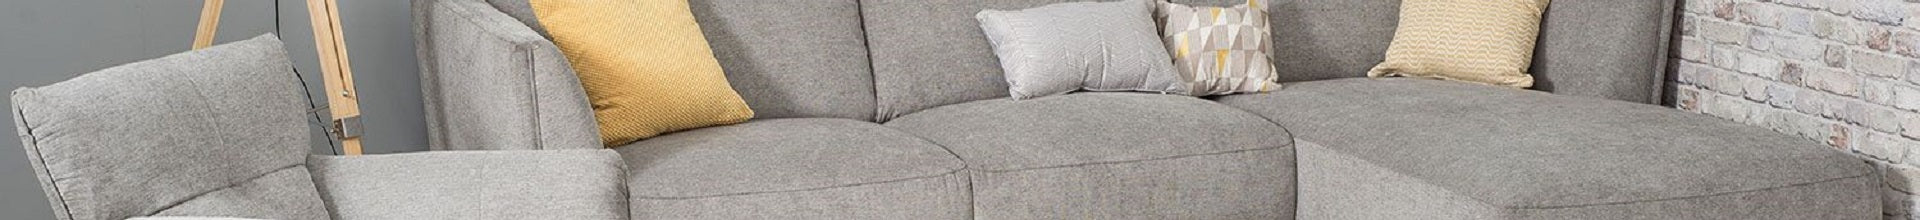 New Sofa Arrivals at Sofas Direct UK